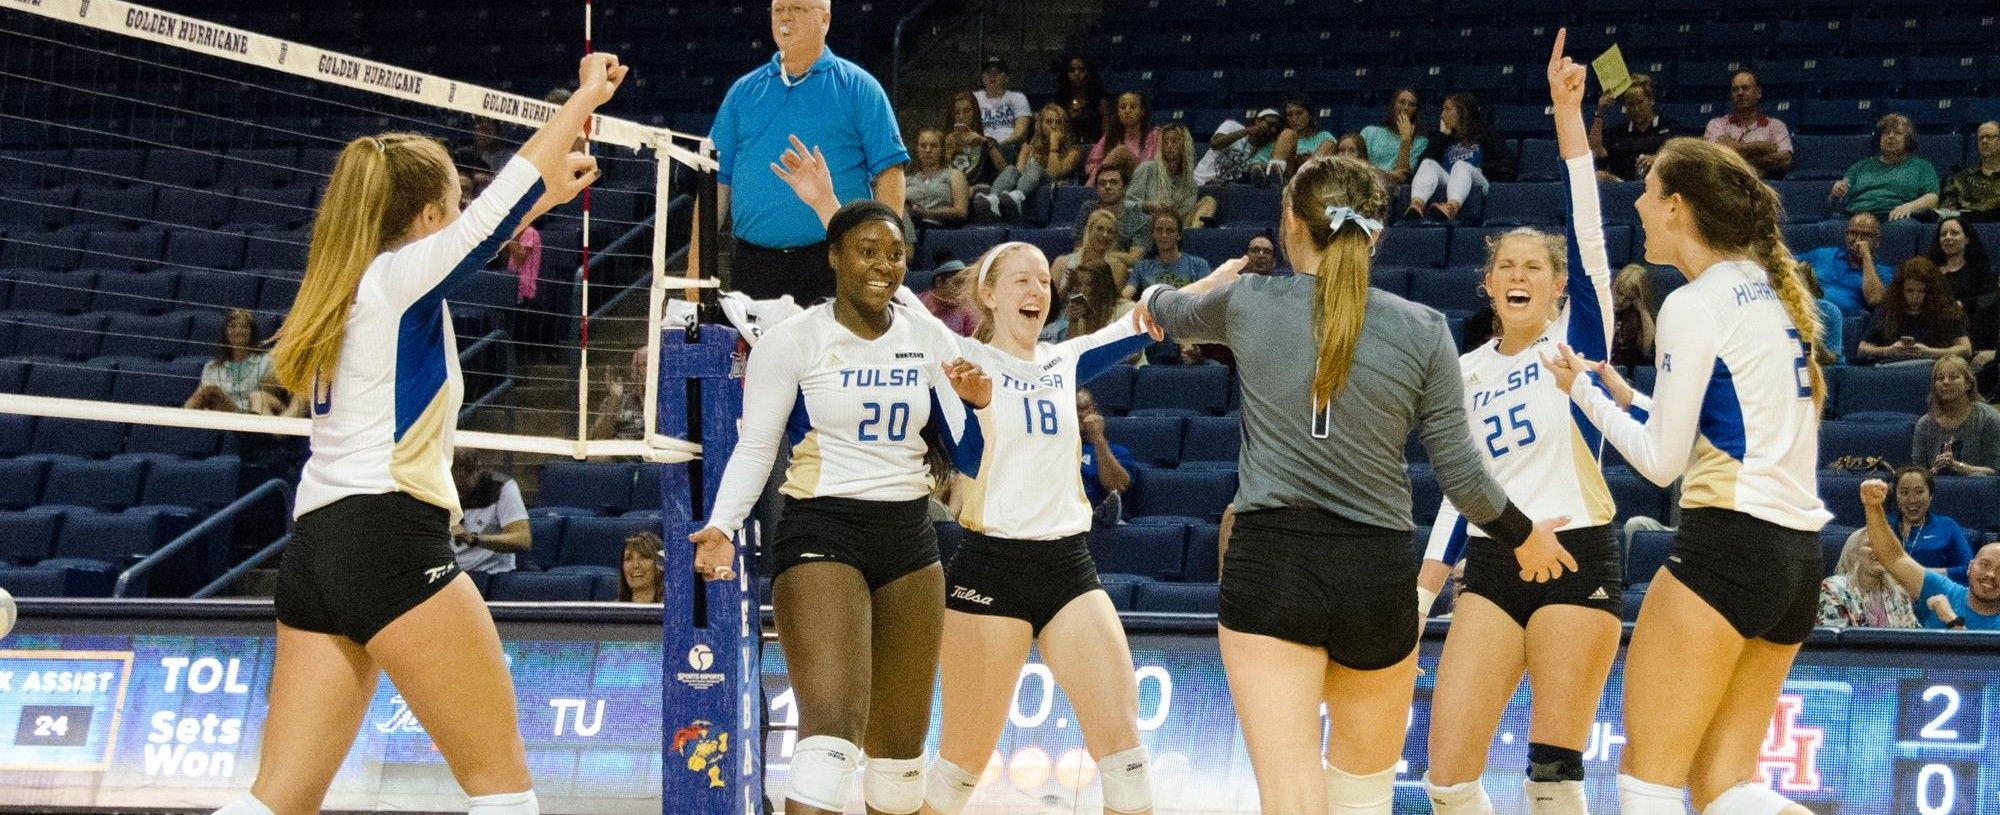 Tulsa Announces 2018 Volleyball Schedule University Of Tulsa Athletics Volleyball News Volleyball Team Athlete